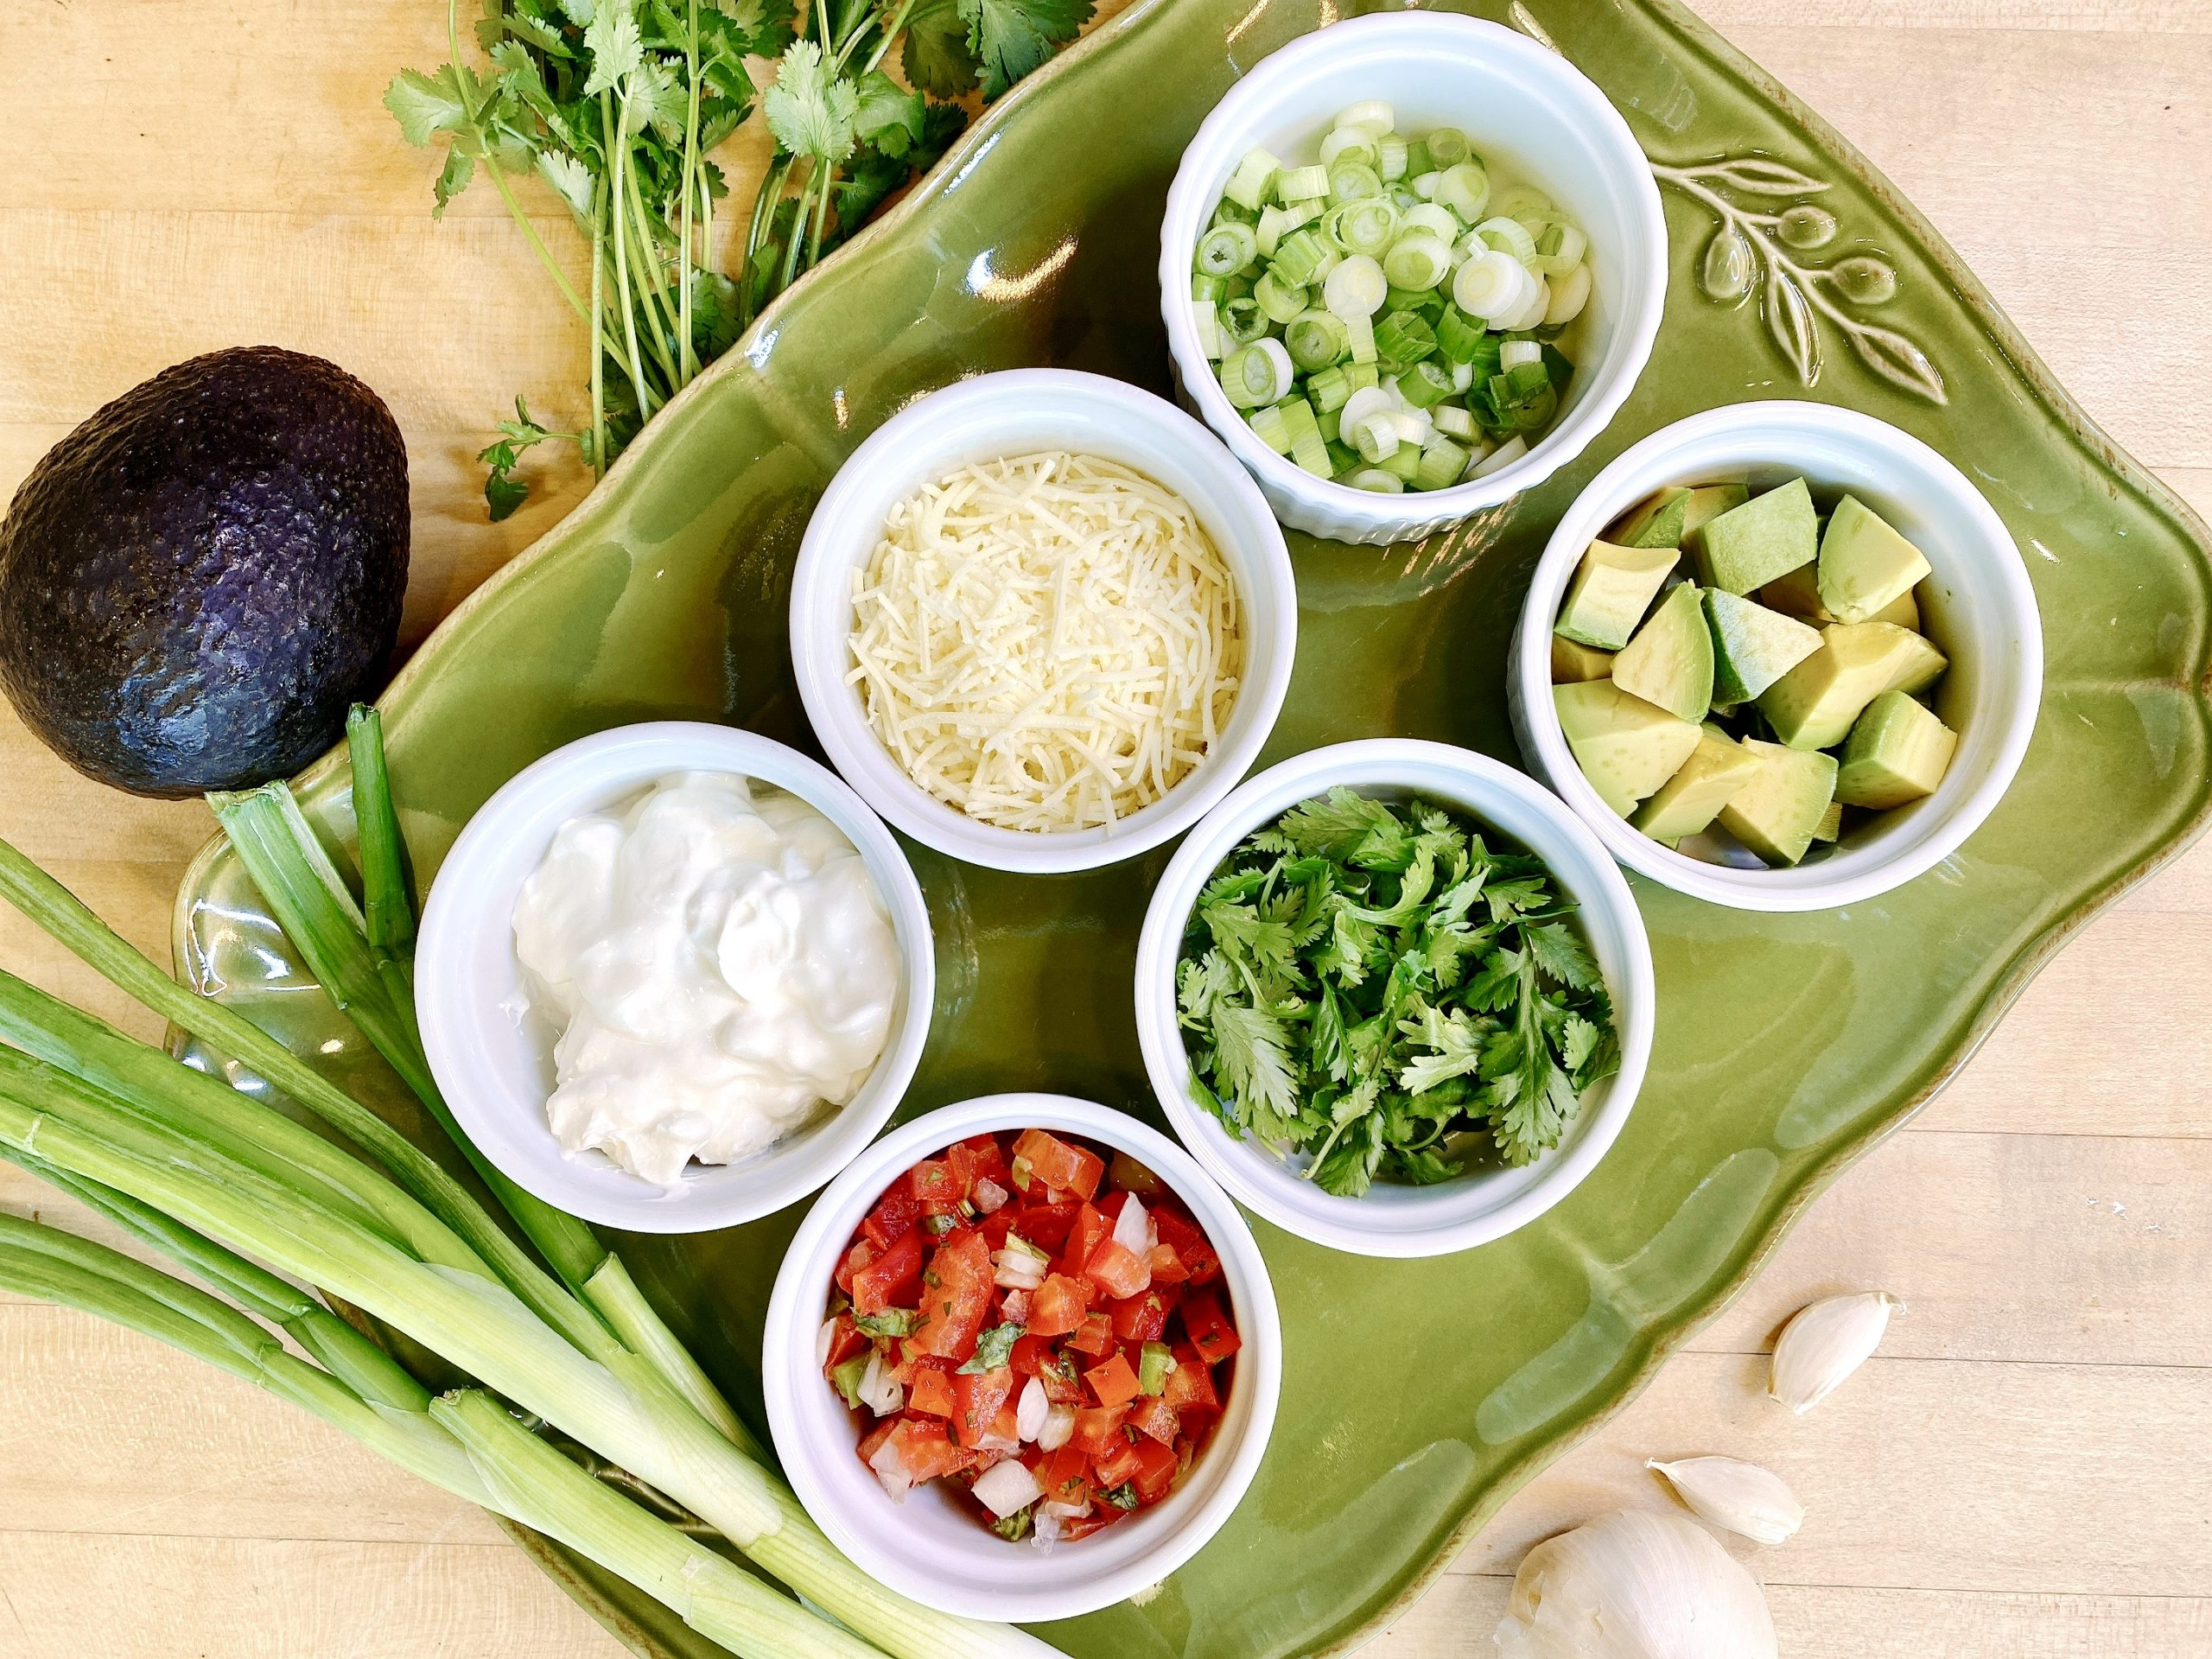 ramekins of chili toppings including sour cream, shredded cheese, green onions, chopped avocado, cilantro leaves and pico de gallo tomato salsa, arranged on a green platter